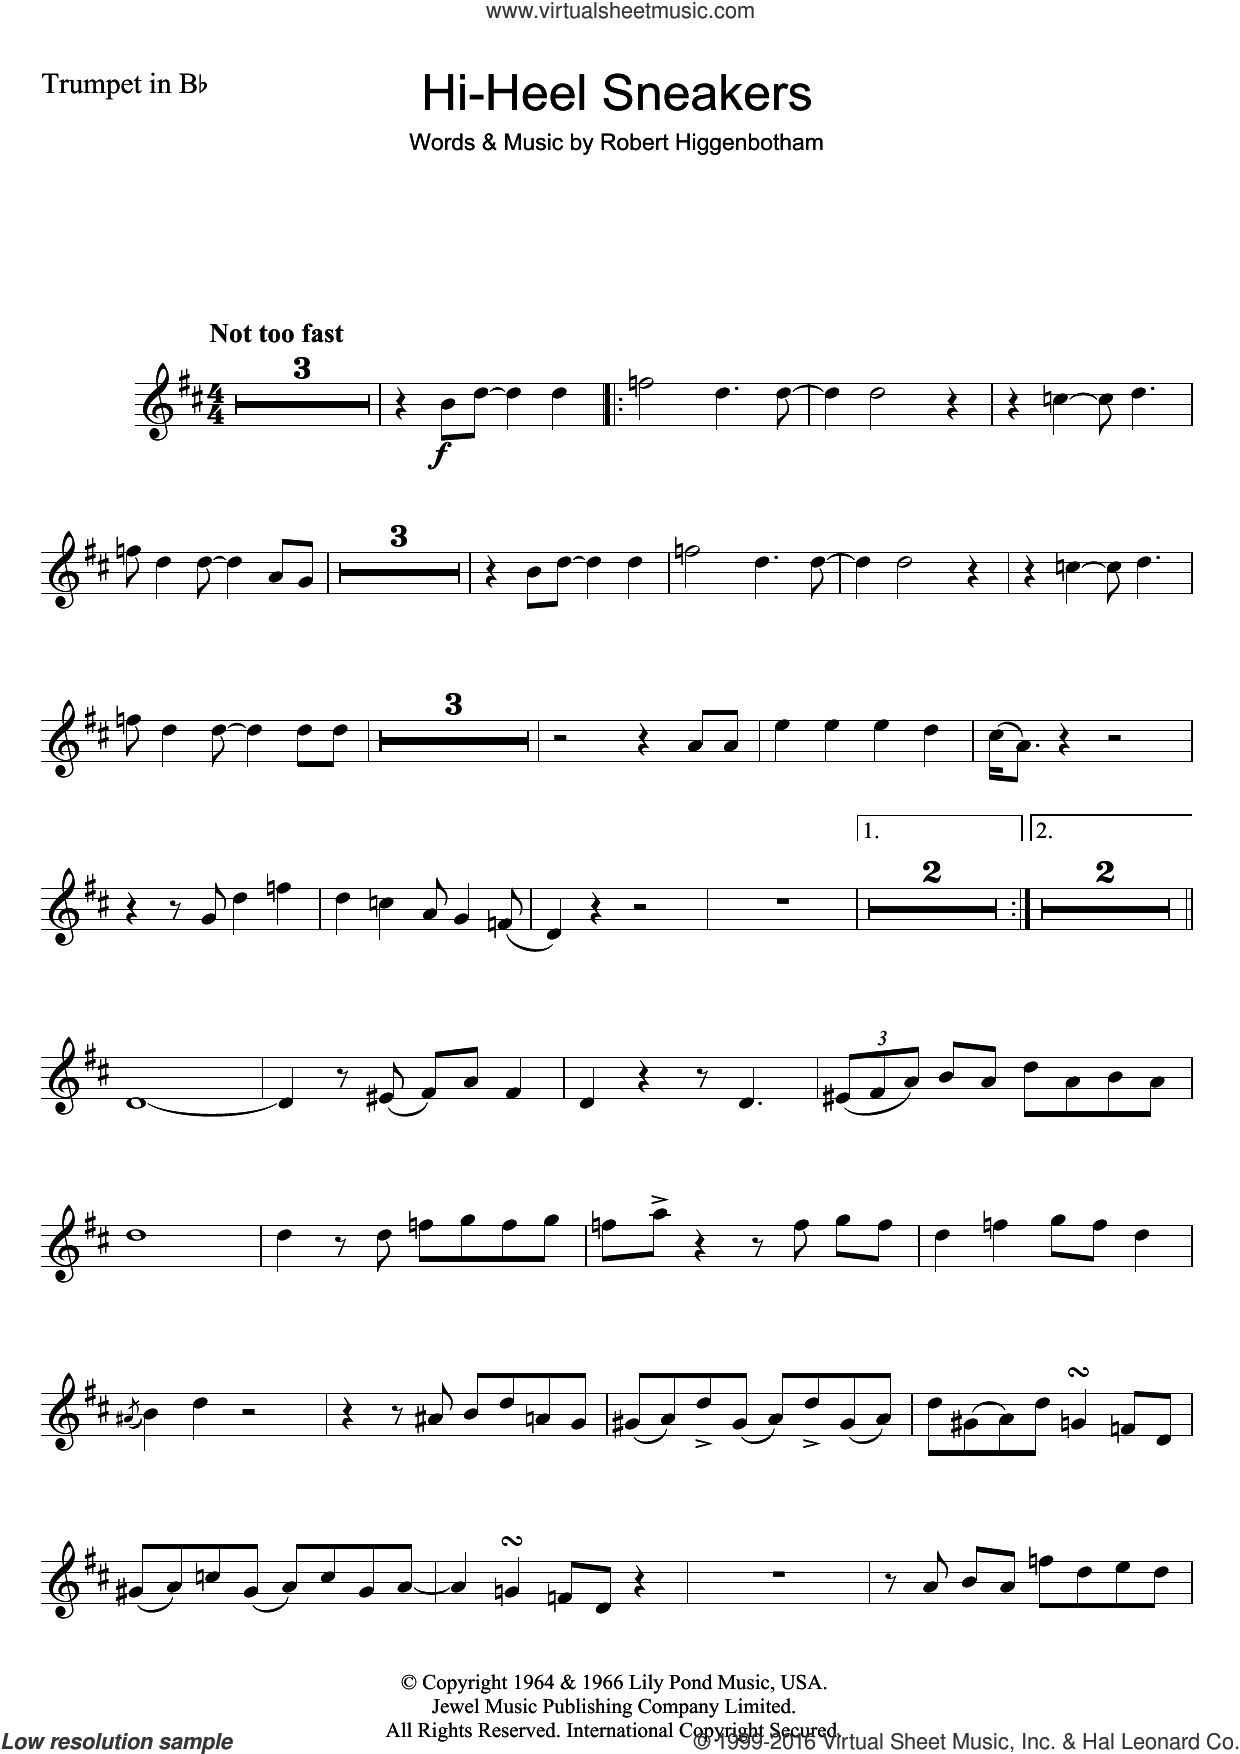 Hi-Heel Sneakers sheet music for trumpet solo by Tommy Tucker and Robert Higginbotham, intermediate skill level